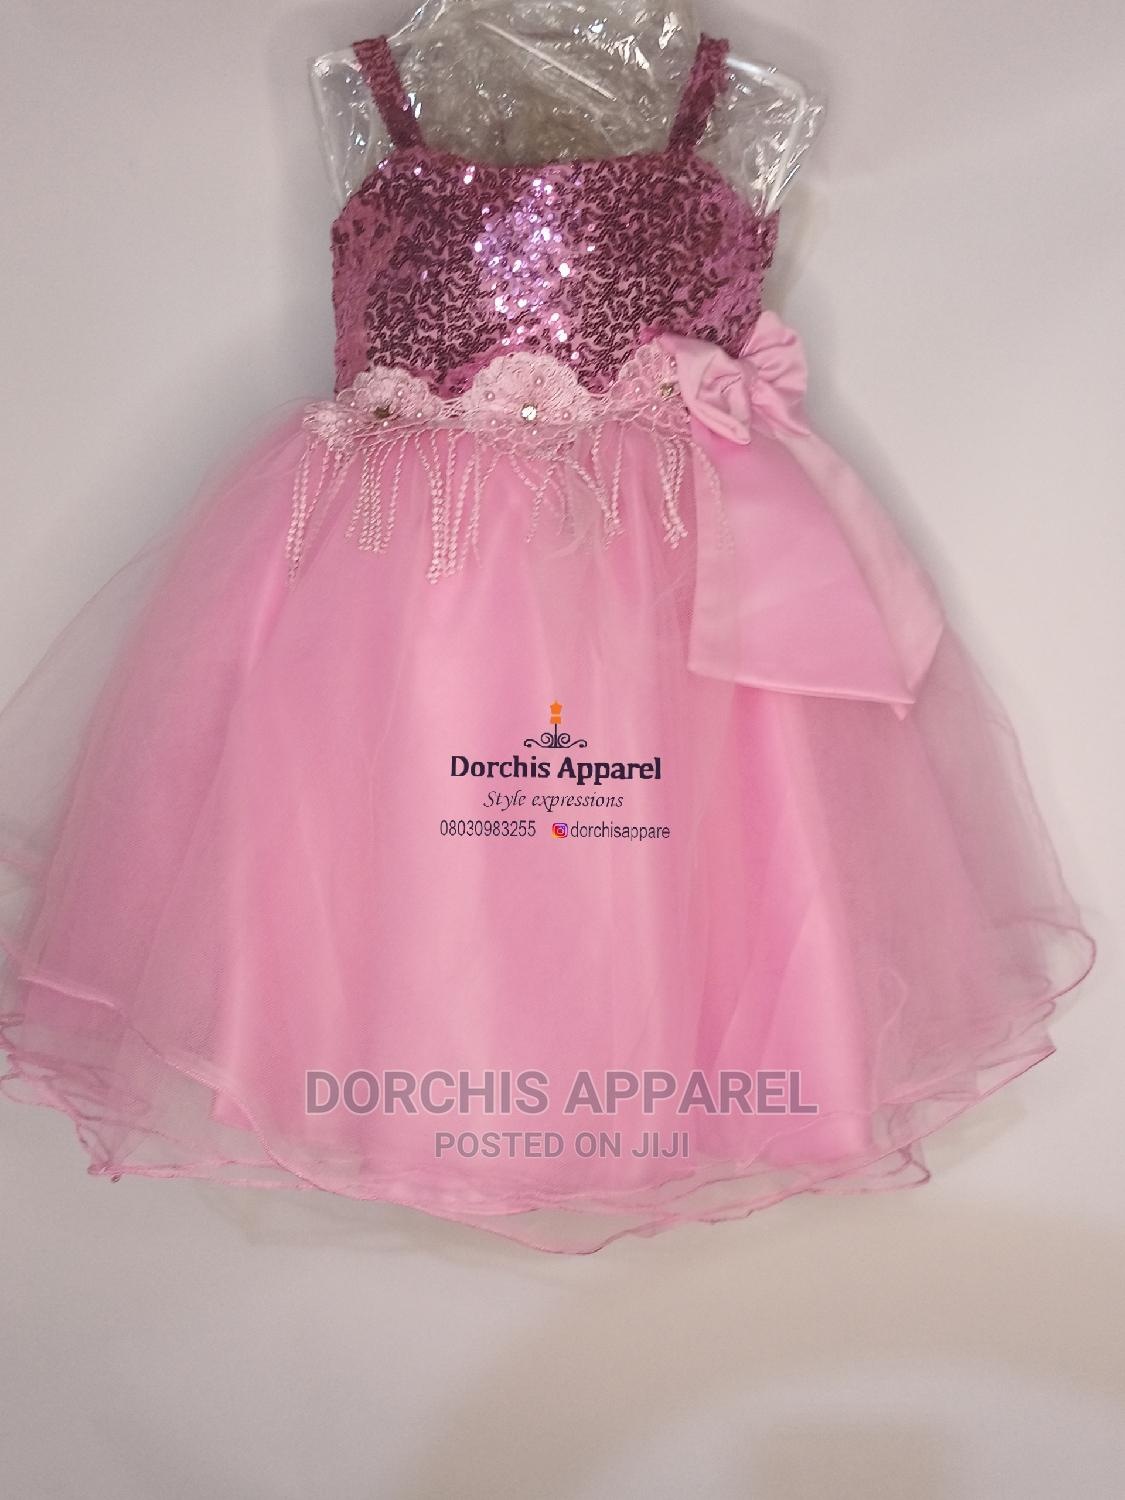 Dorchis Baby Girl Dress   Children's Clothing for sale in Surulere, Lagos State, Nigeria